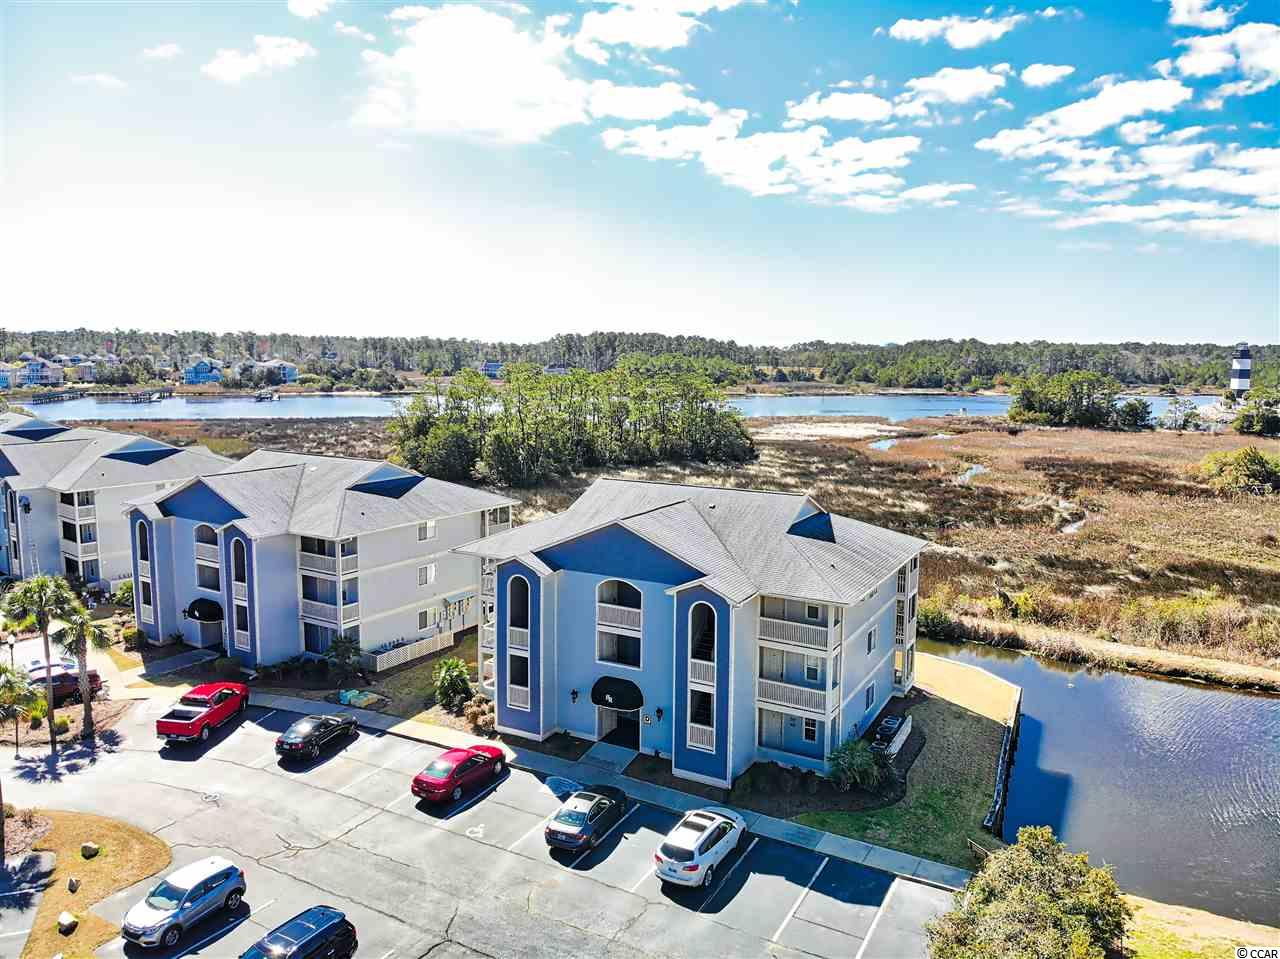 Look no farther... whether you are an investor or just searching for a beach getaway, this one is it!  Come enjoy the breathtaking views of the marsh, Intracoastal Waterway, harbor and The Governor's Lighthouse from this third floor, one bedroom, one bath, furnished condo.  Located in Harbour Ridge, a gated community that is a true hidden gem with swimming pool, hot tub, picnic area and large screen pavilion on the Intracoastal Waterway.  This condo comes complete with furniture, stainless steel appliances, washer/dryer and more! The HVAC system was replaced in March 2019.